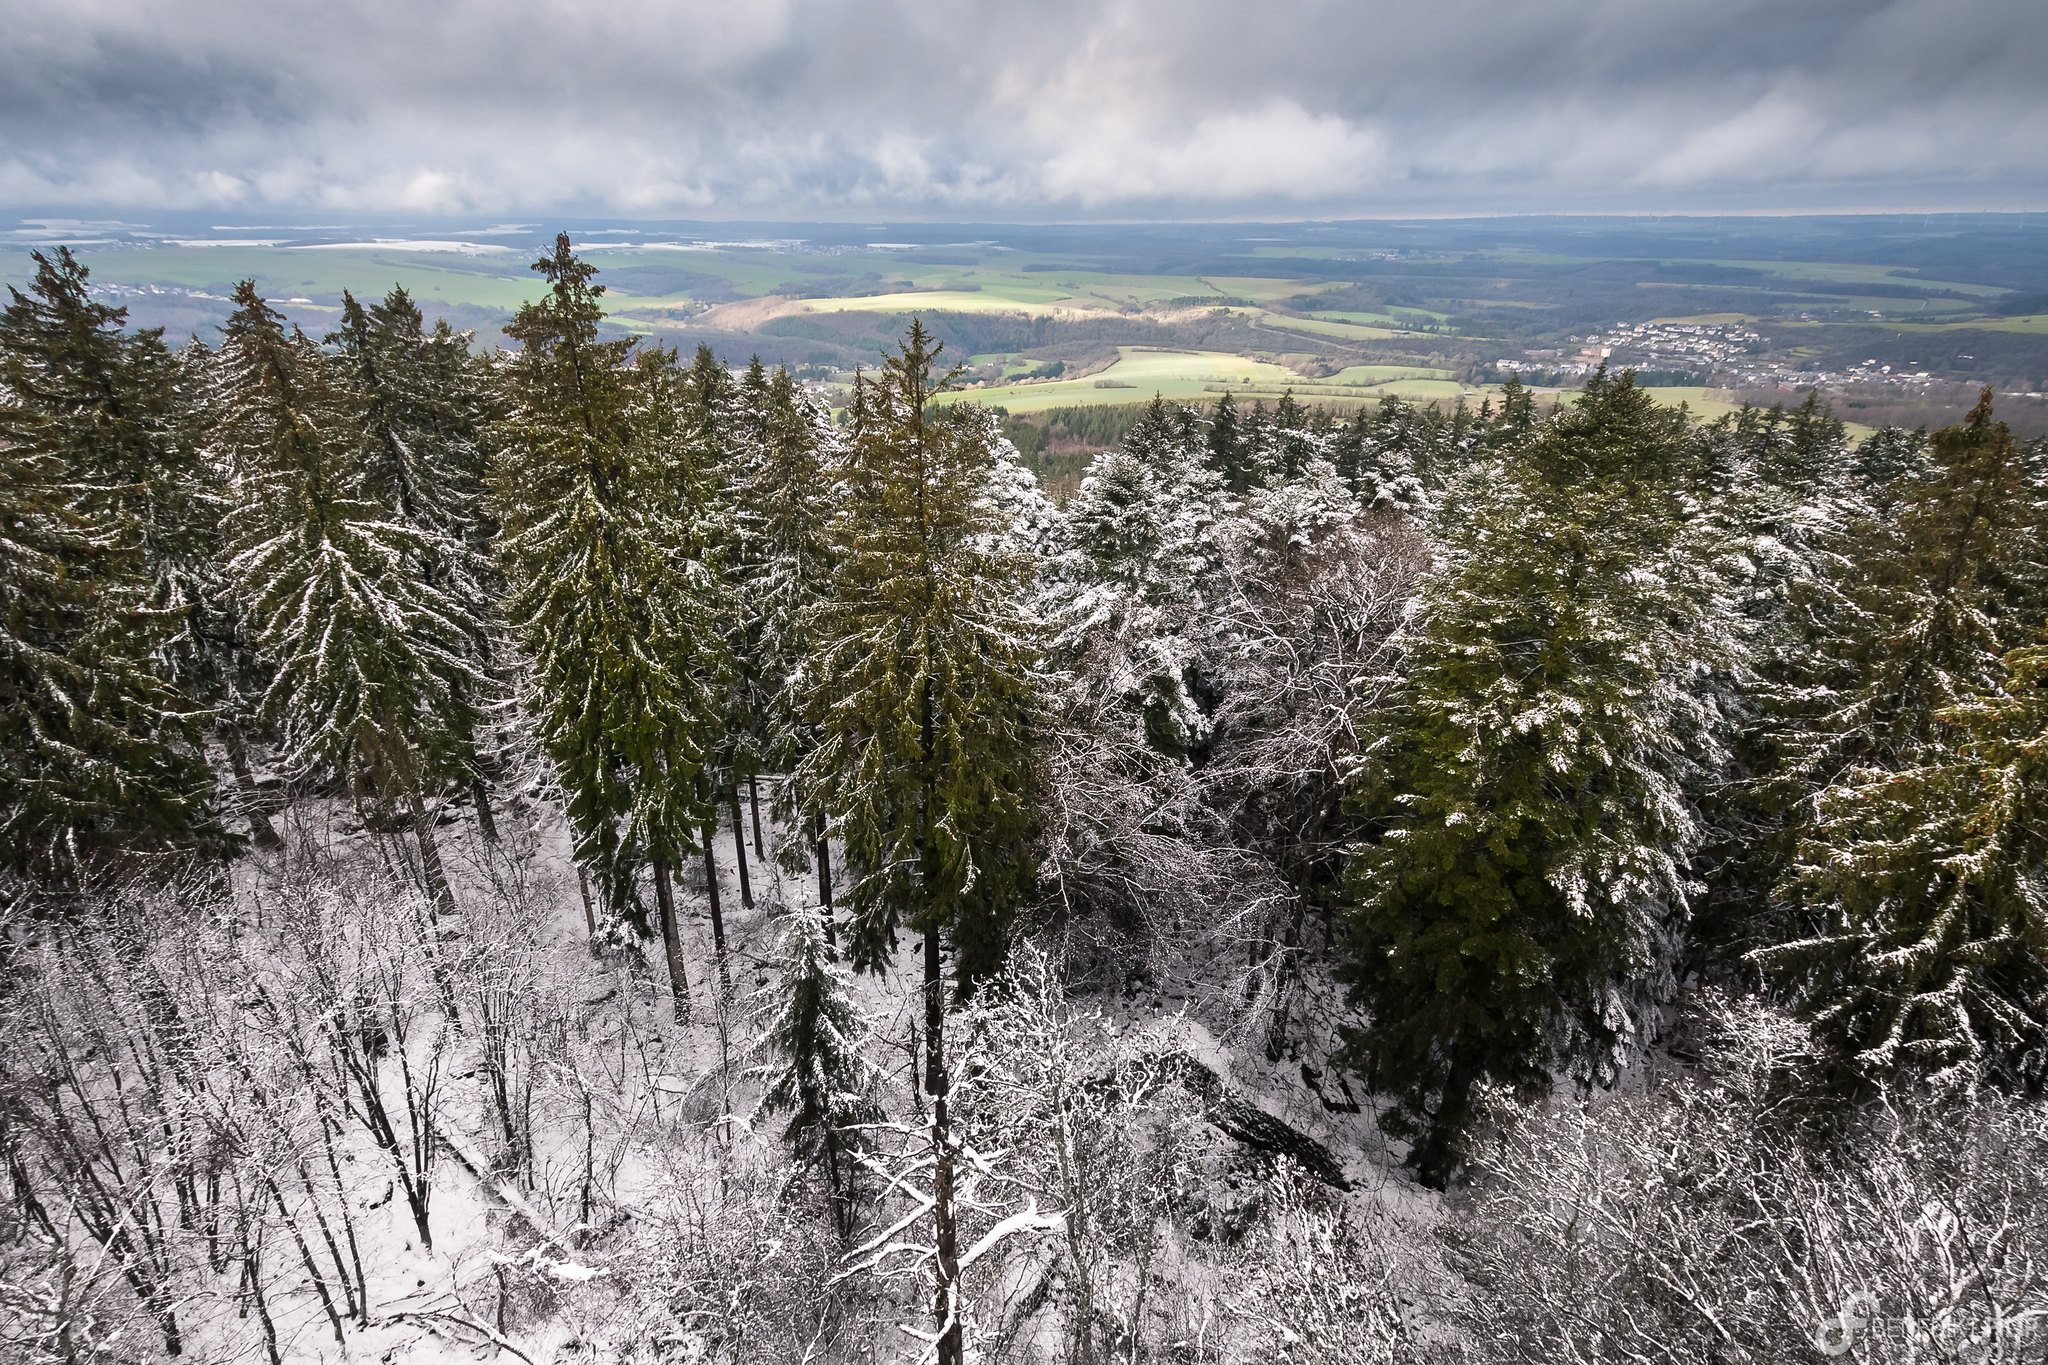 Winter wonderland at Koppenstein lookout tower